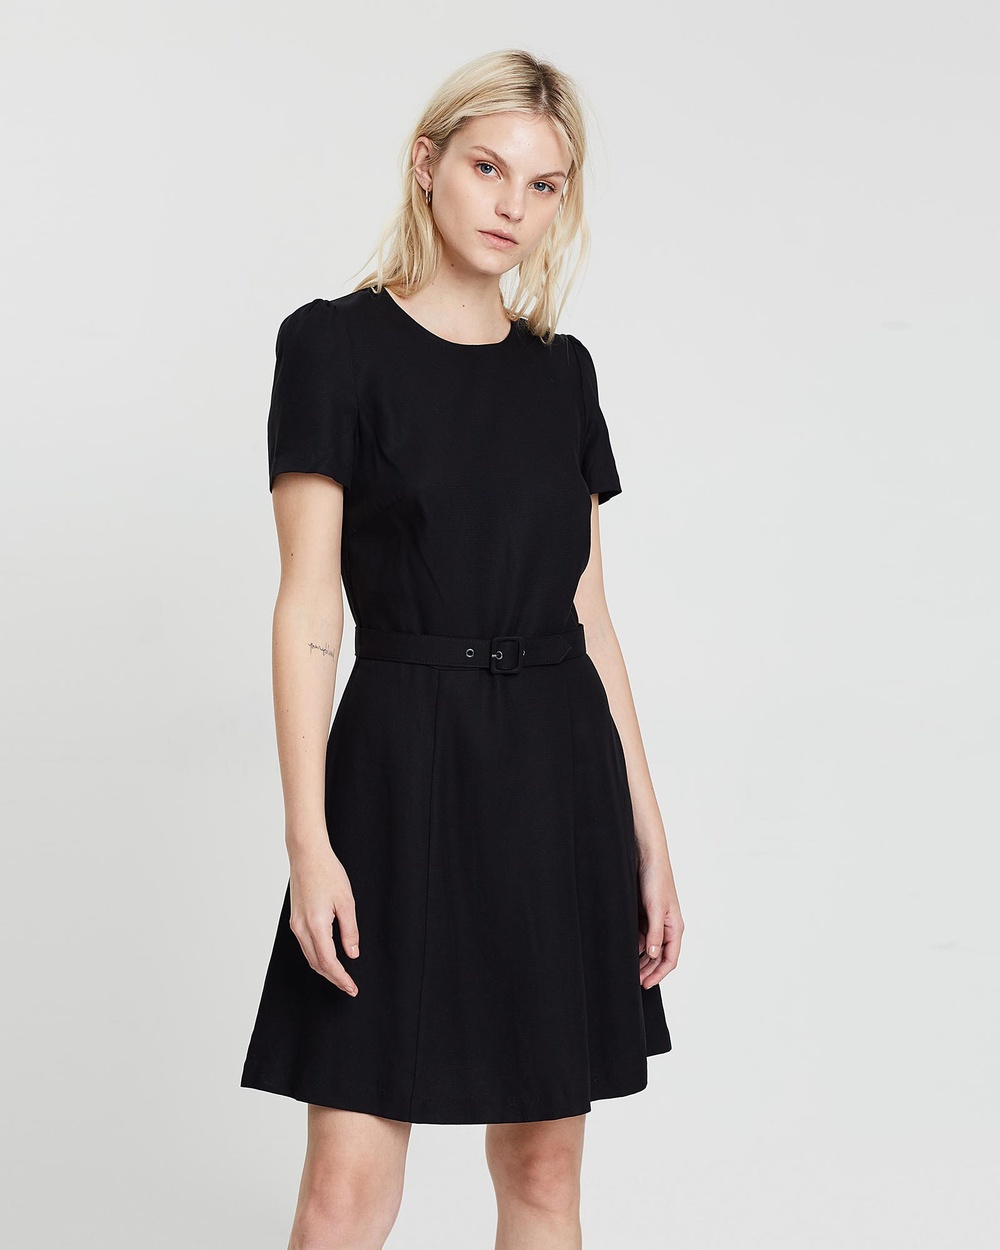 Marcs BLACK Textured Tencel Dress